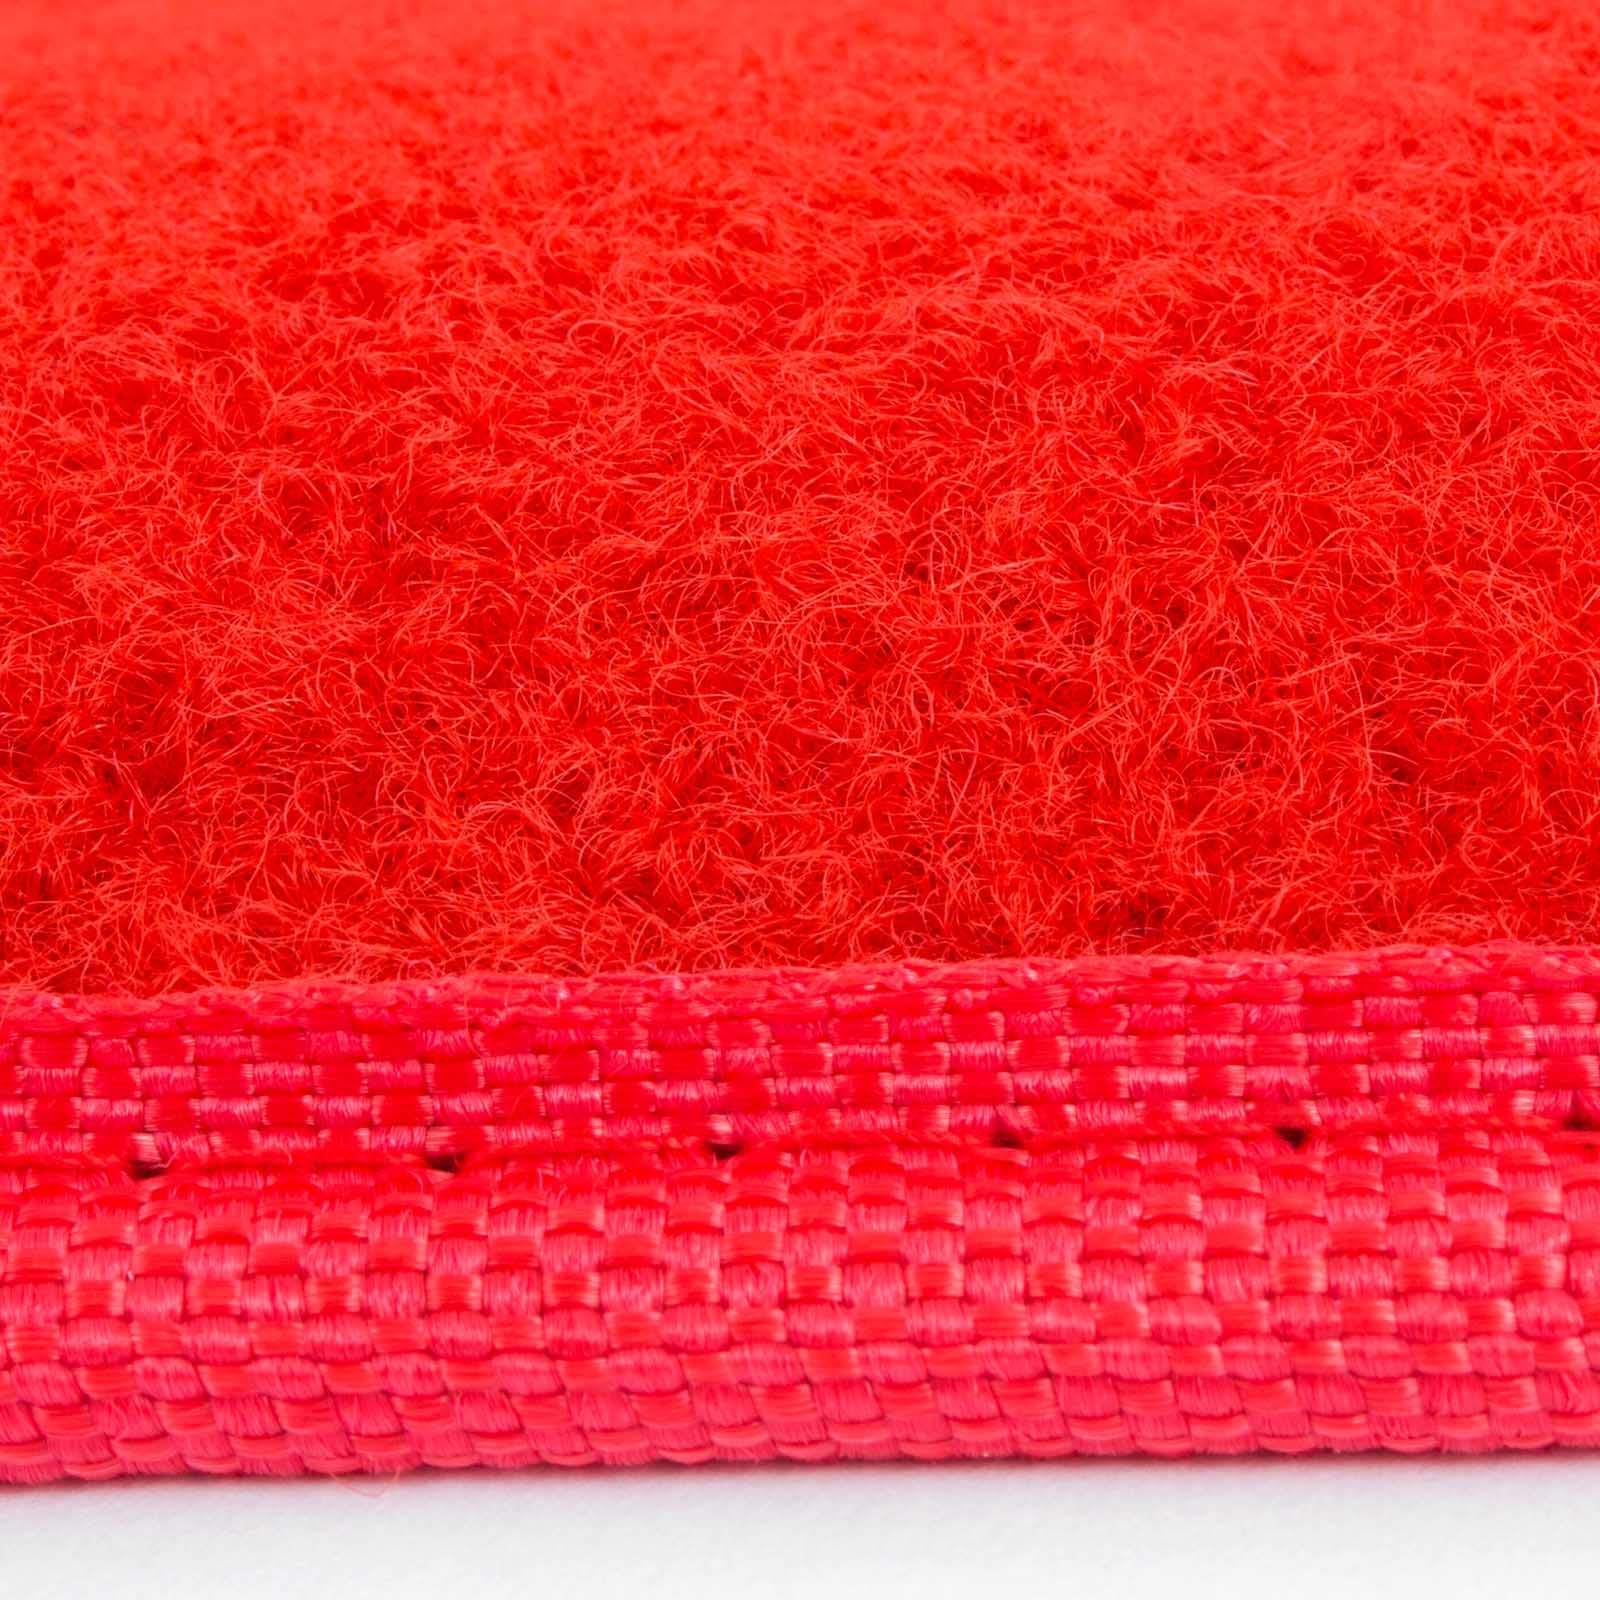 Happybuy 3.3Ft X 13Ft Large Red Carpet Runner Rug Solid TRP Rubber Backed Hollywood Runner Carpet Non-Slip Stair Patio Party Decor Wedding 1M X 4M Aisle Floor Runner Rug - Various Sizes (Red, 3x13Ft) by Happybuy (Image #4)